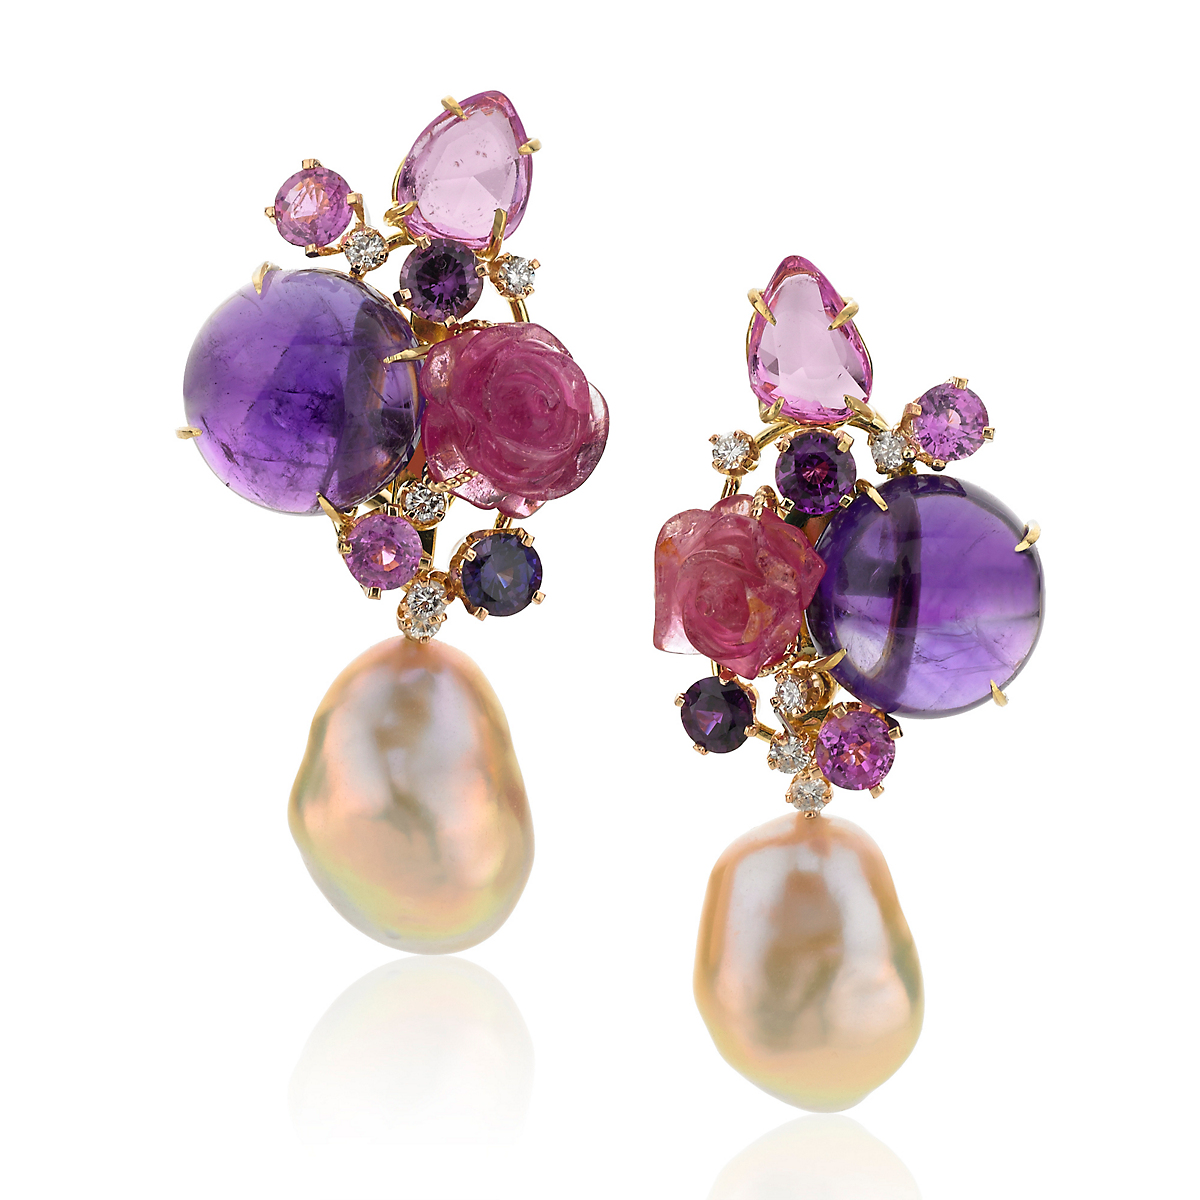 Russell Trusso Amethyst & Tourmaline Earrings with Pearl Drops